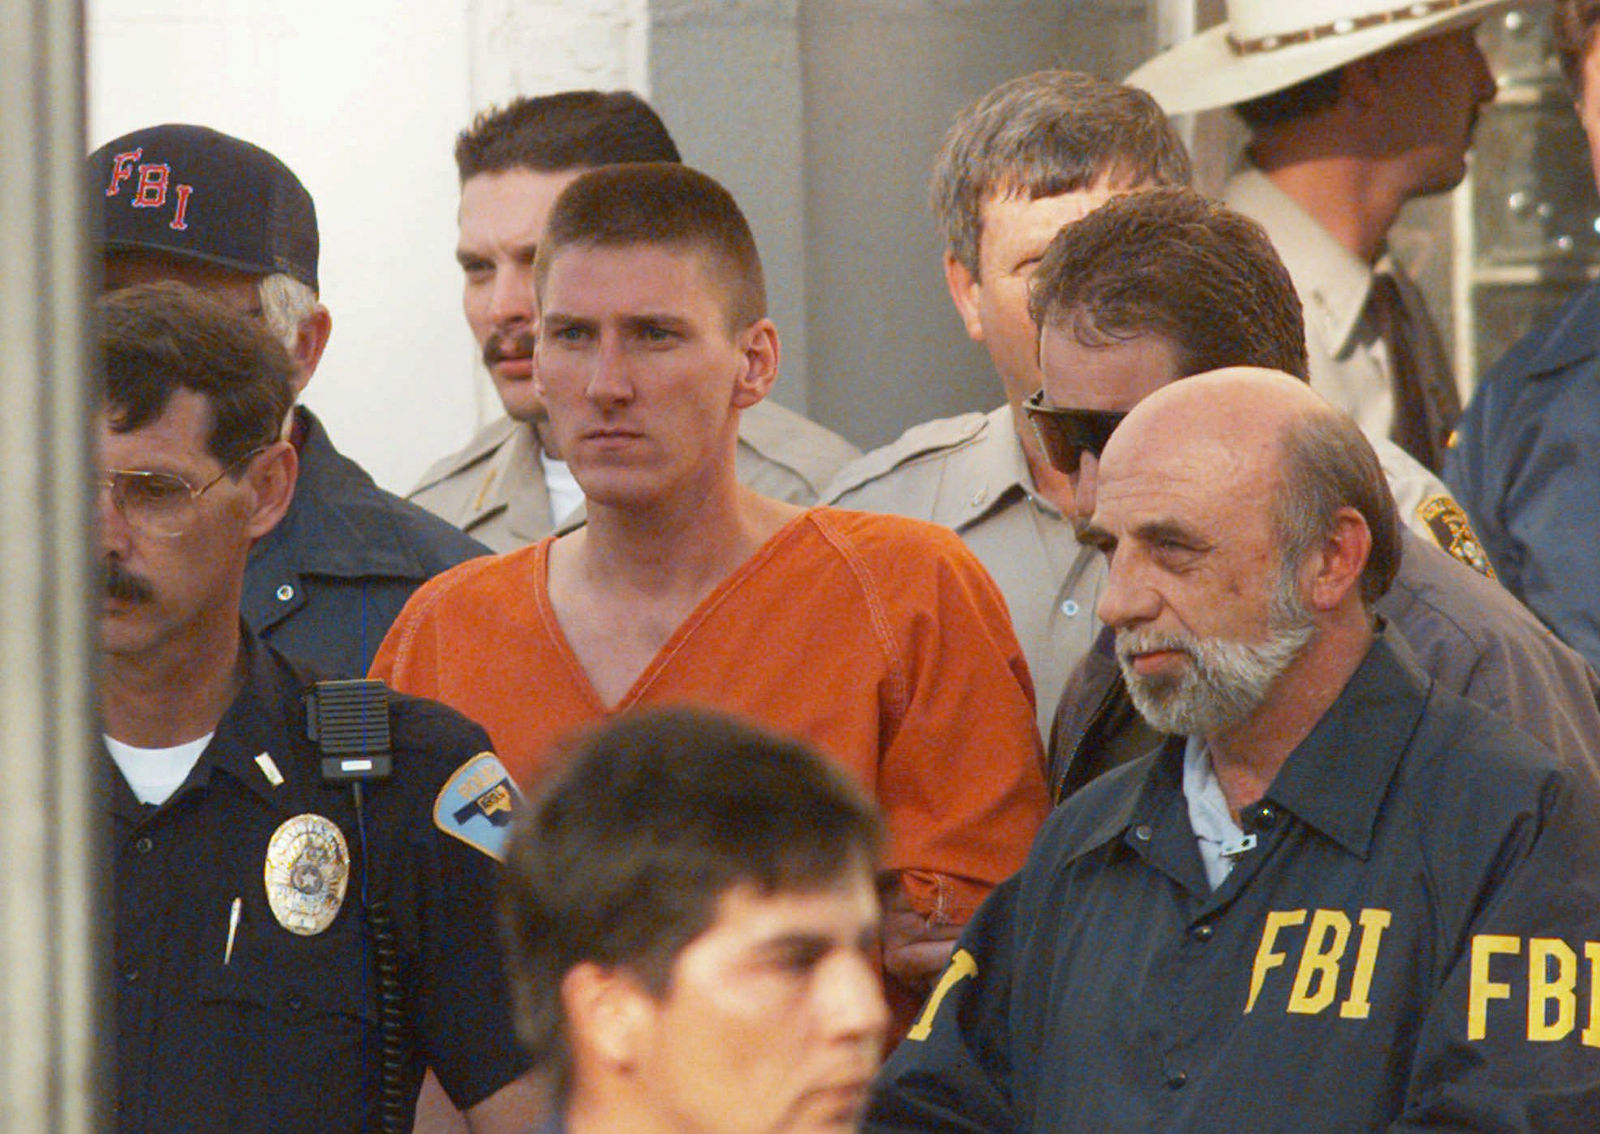 In 1997, an unrepentant Timothy McVeigh was formally sentenced to death for the Oklahoma City bombing.(AP Photo/David Longstreath, File)